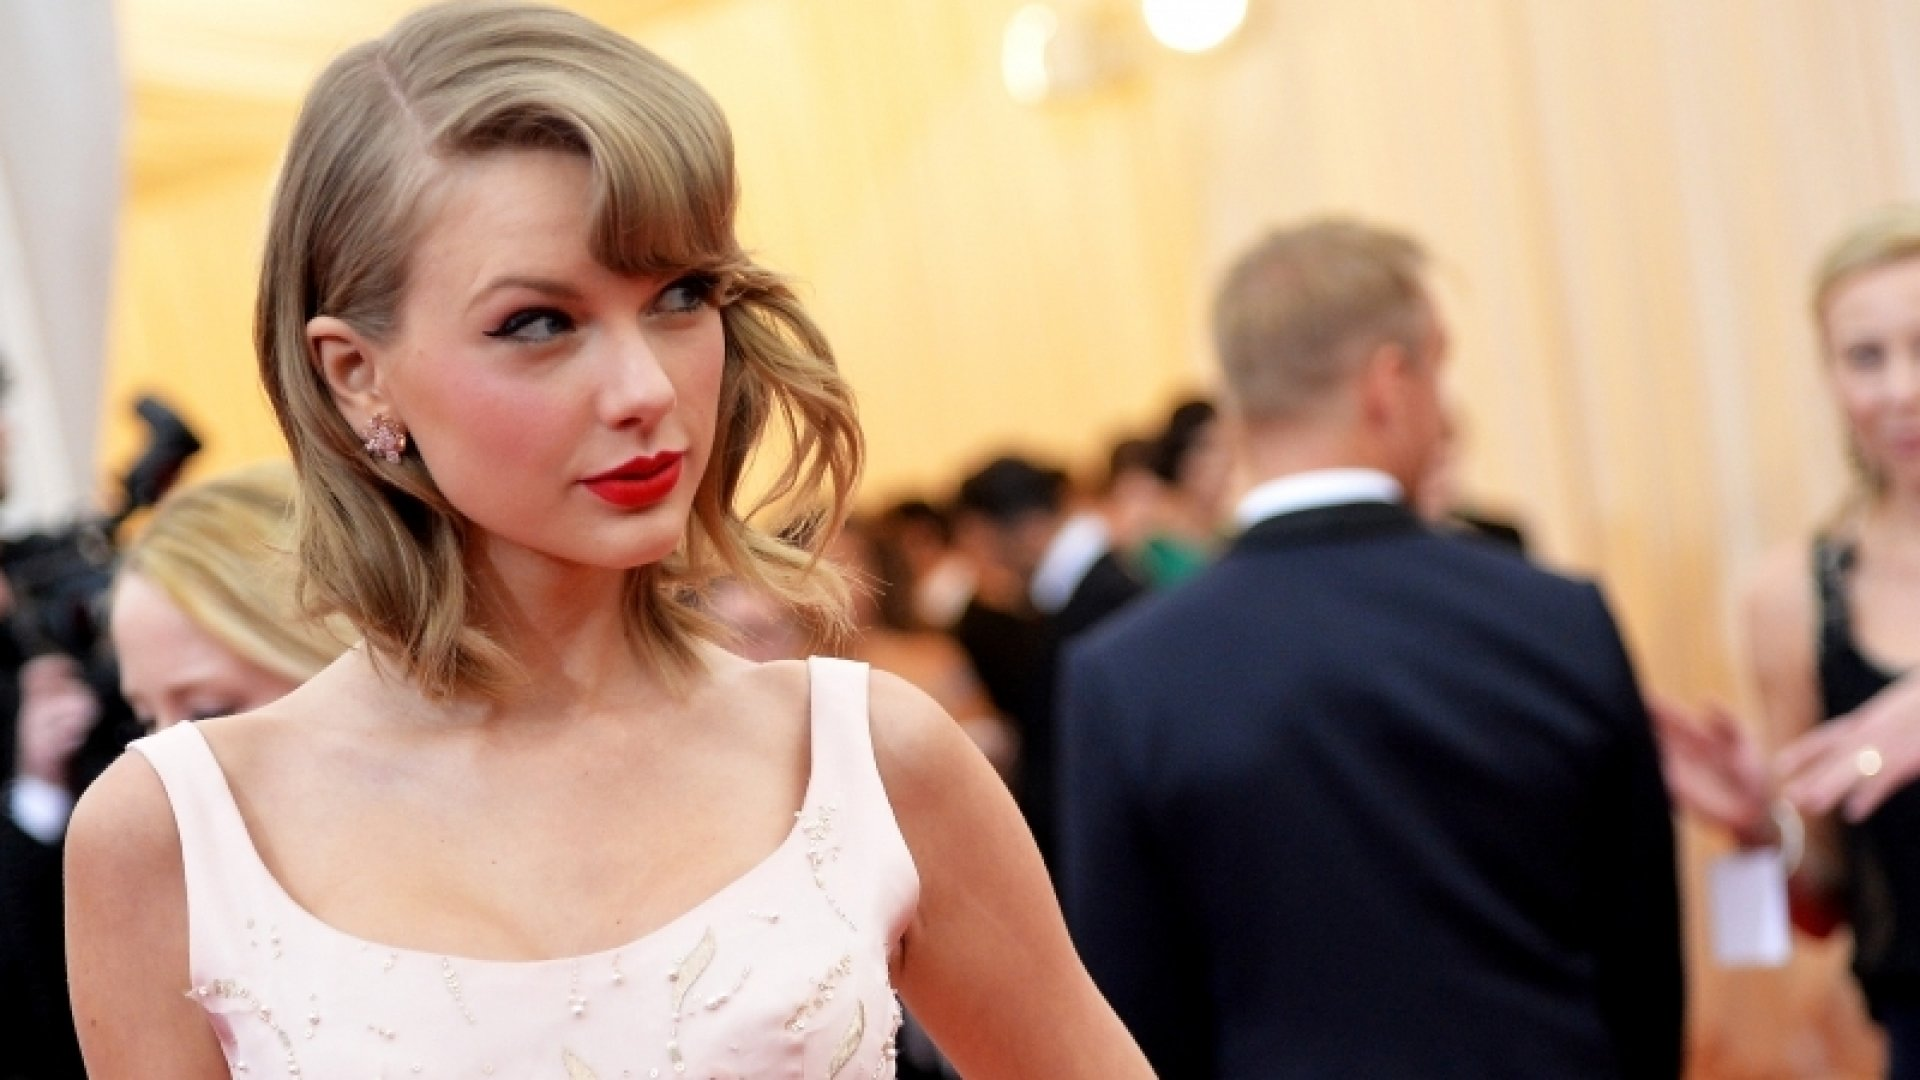 Pop Stars and Craft Beer: Lessons in Branding and Trademarking